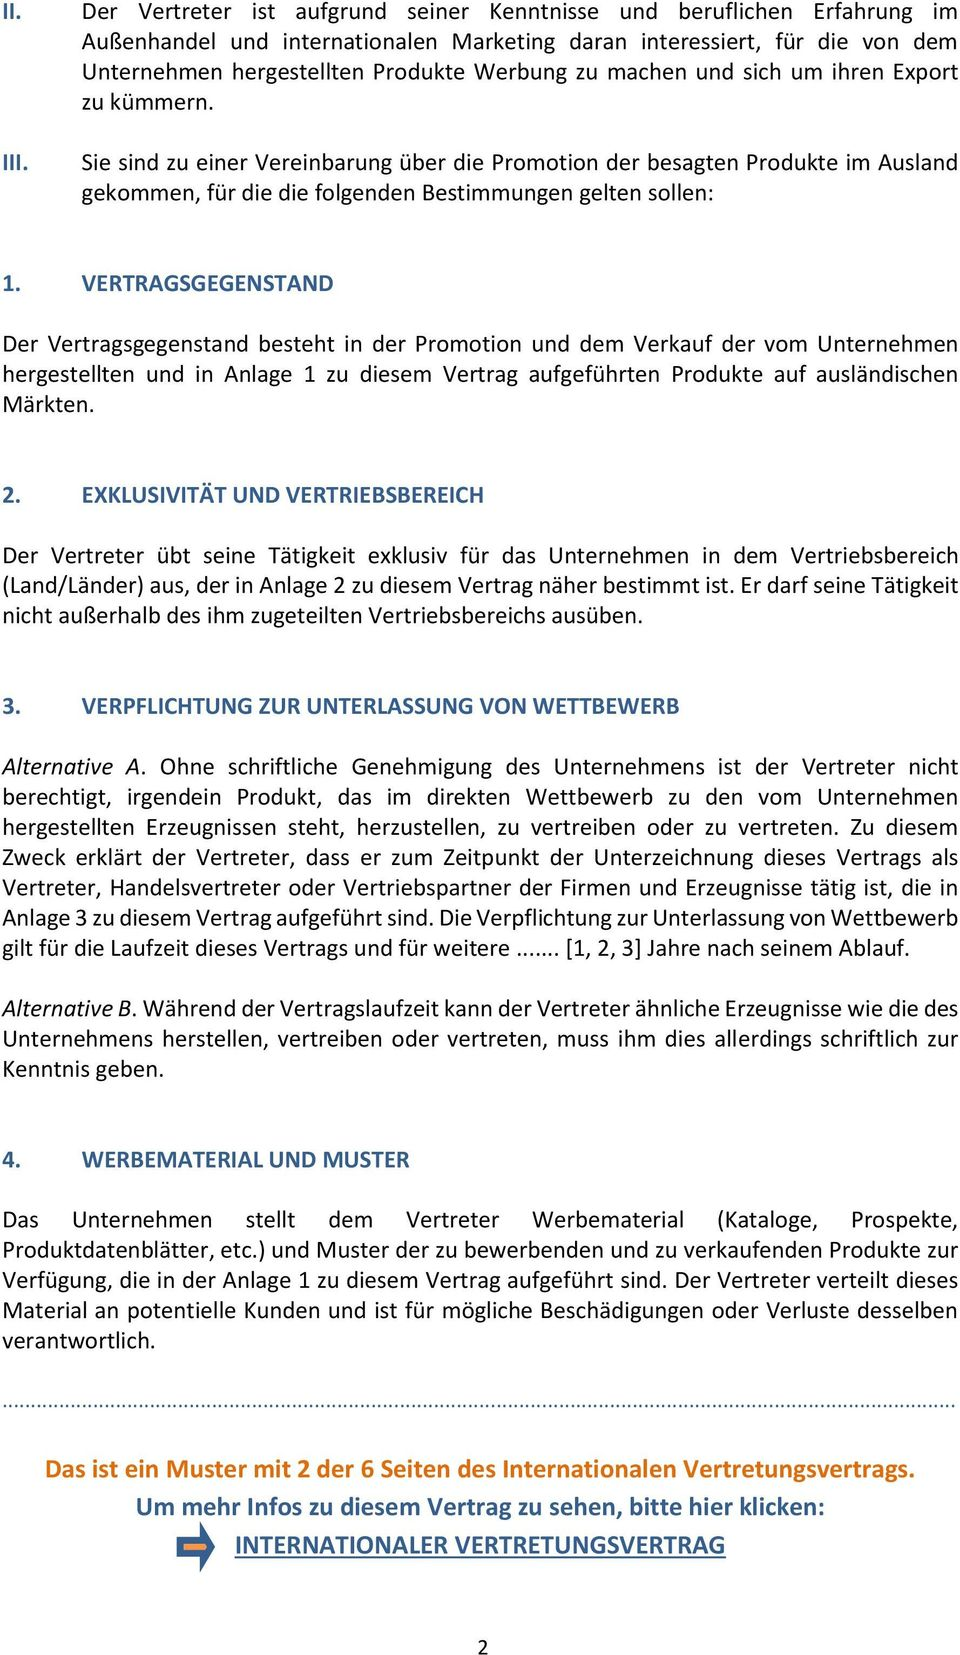 INTERNATIONALER VERTRETUNGSVERTRAG MUSTER - PDF